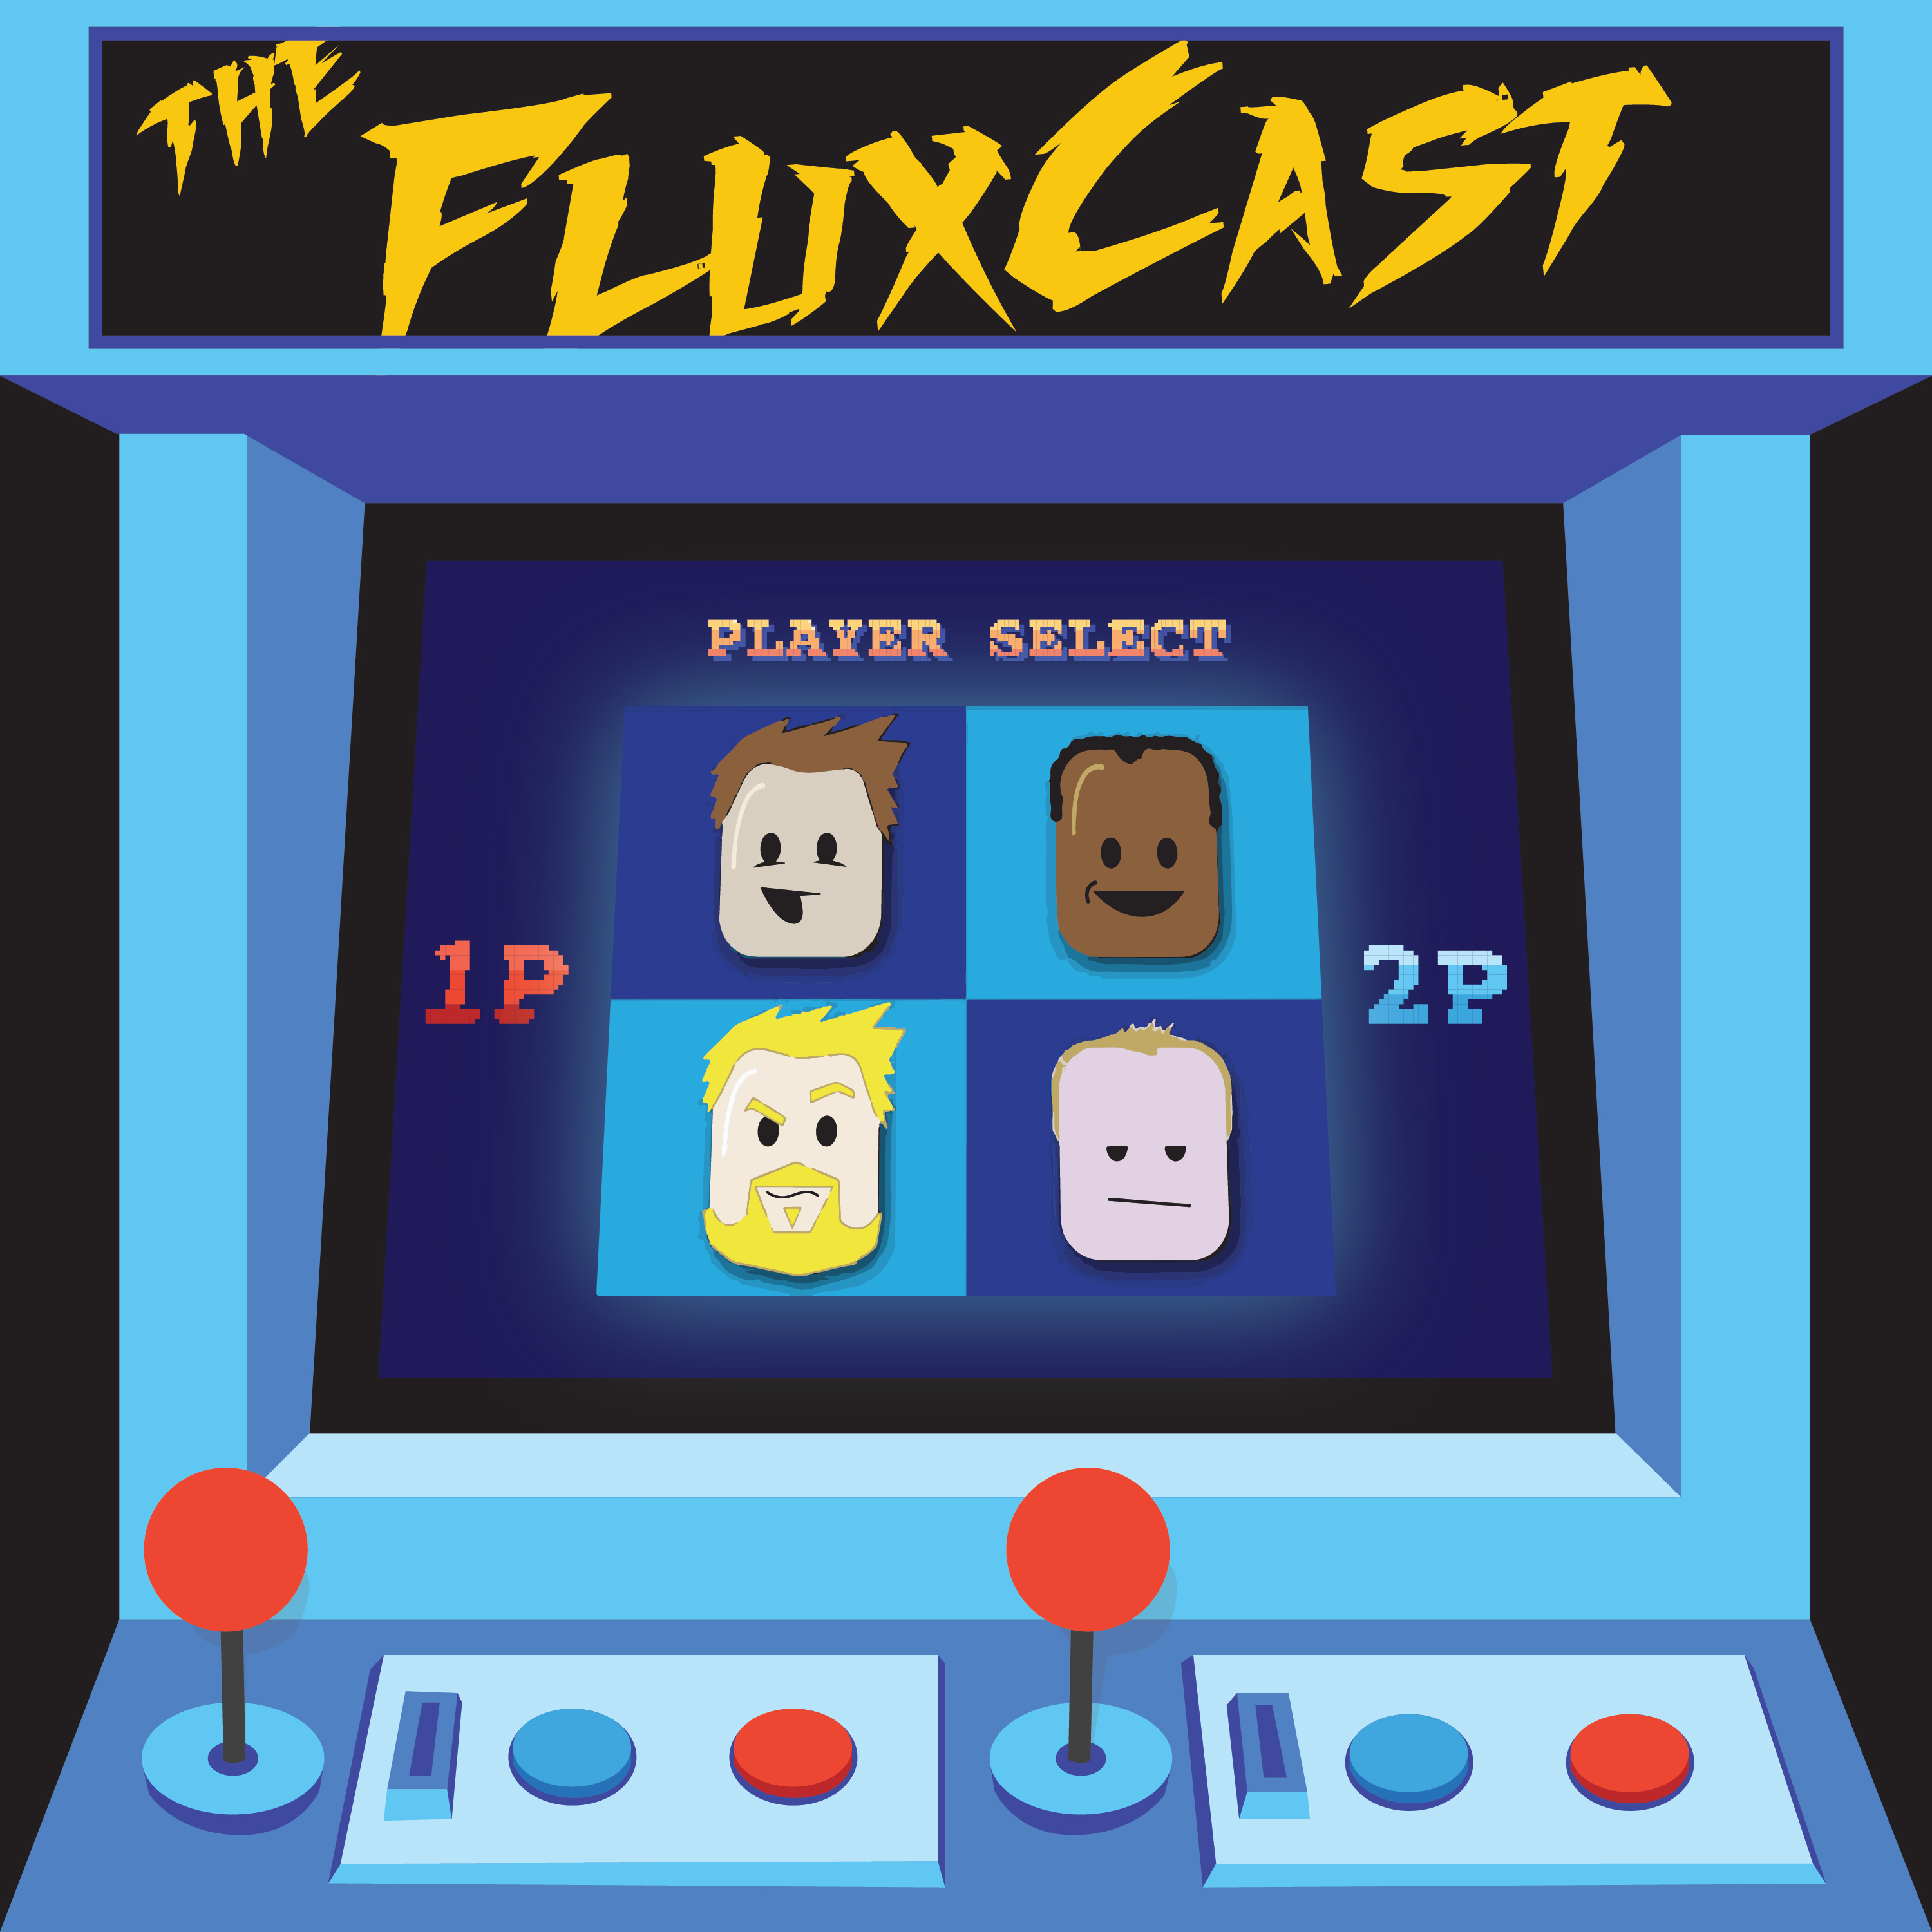 The FluxCast